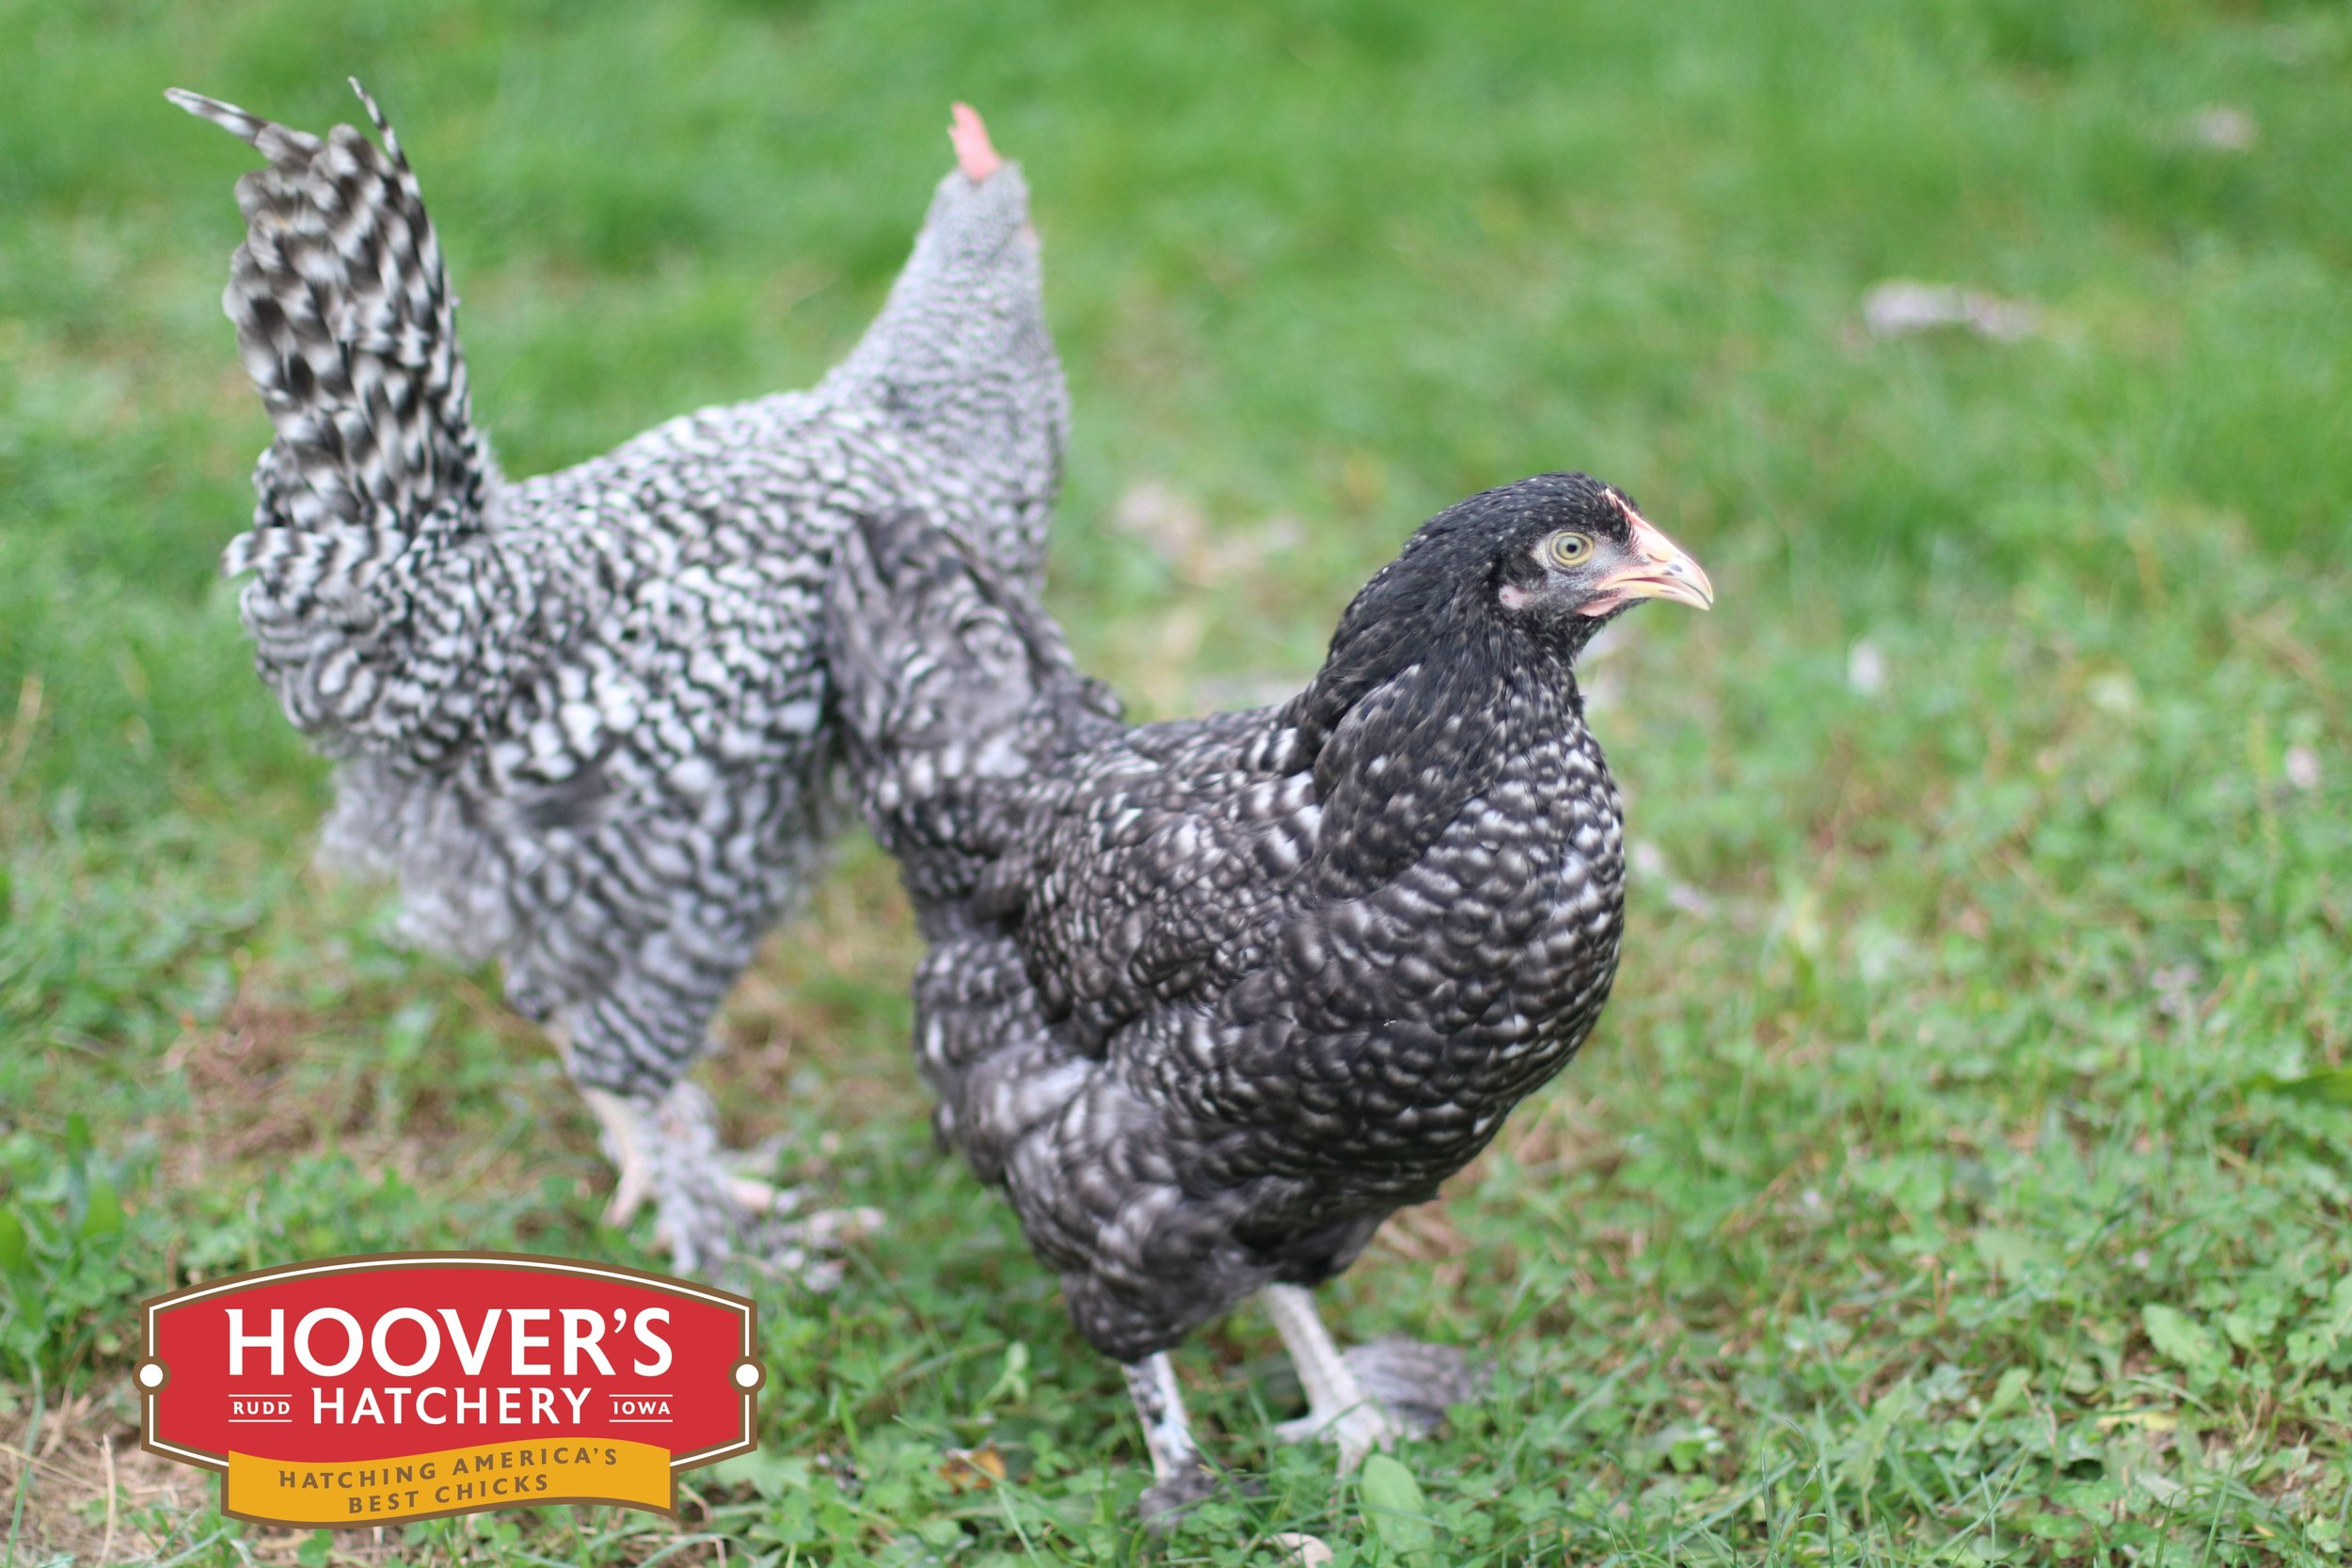 French Cuckoo Maran - The Maran breed originates from a town called Marans, France. It is a very hardy breed with a docile temperament. This breed tends to be more athletic, taking to foraging and free ranging more often that other breeds. The hens lay dark brown and dark speckled eggs. These tough birds make a great addition to any backyard flock. The French Cuckoo Maran is sold in straight run only. APPROX. 200 MEDIUM EGGS/YEAR | EGG COLOR: BROWN | MATURE WT: MALE 6 LBS. FEMALE 4.5 LBS.